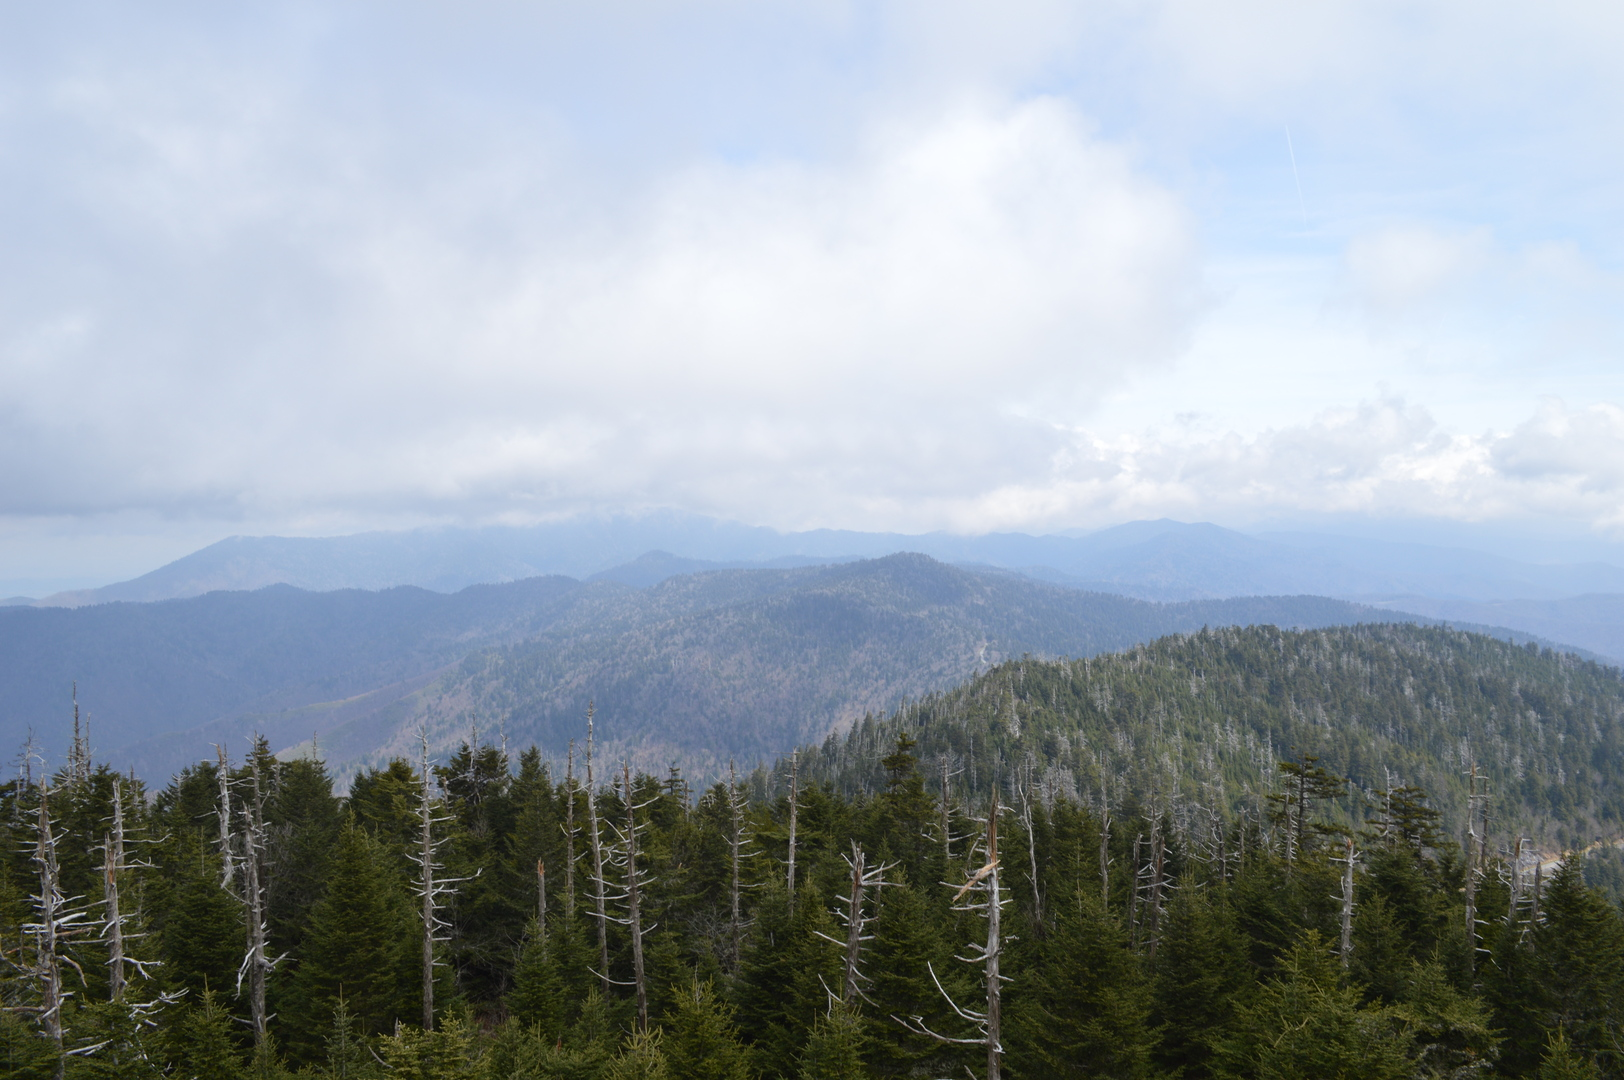 Clingmans Dome view, Great Smoky Mountains National Park